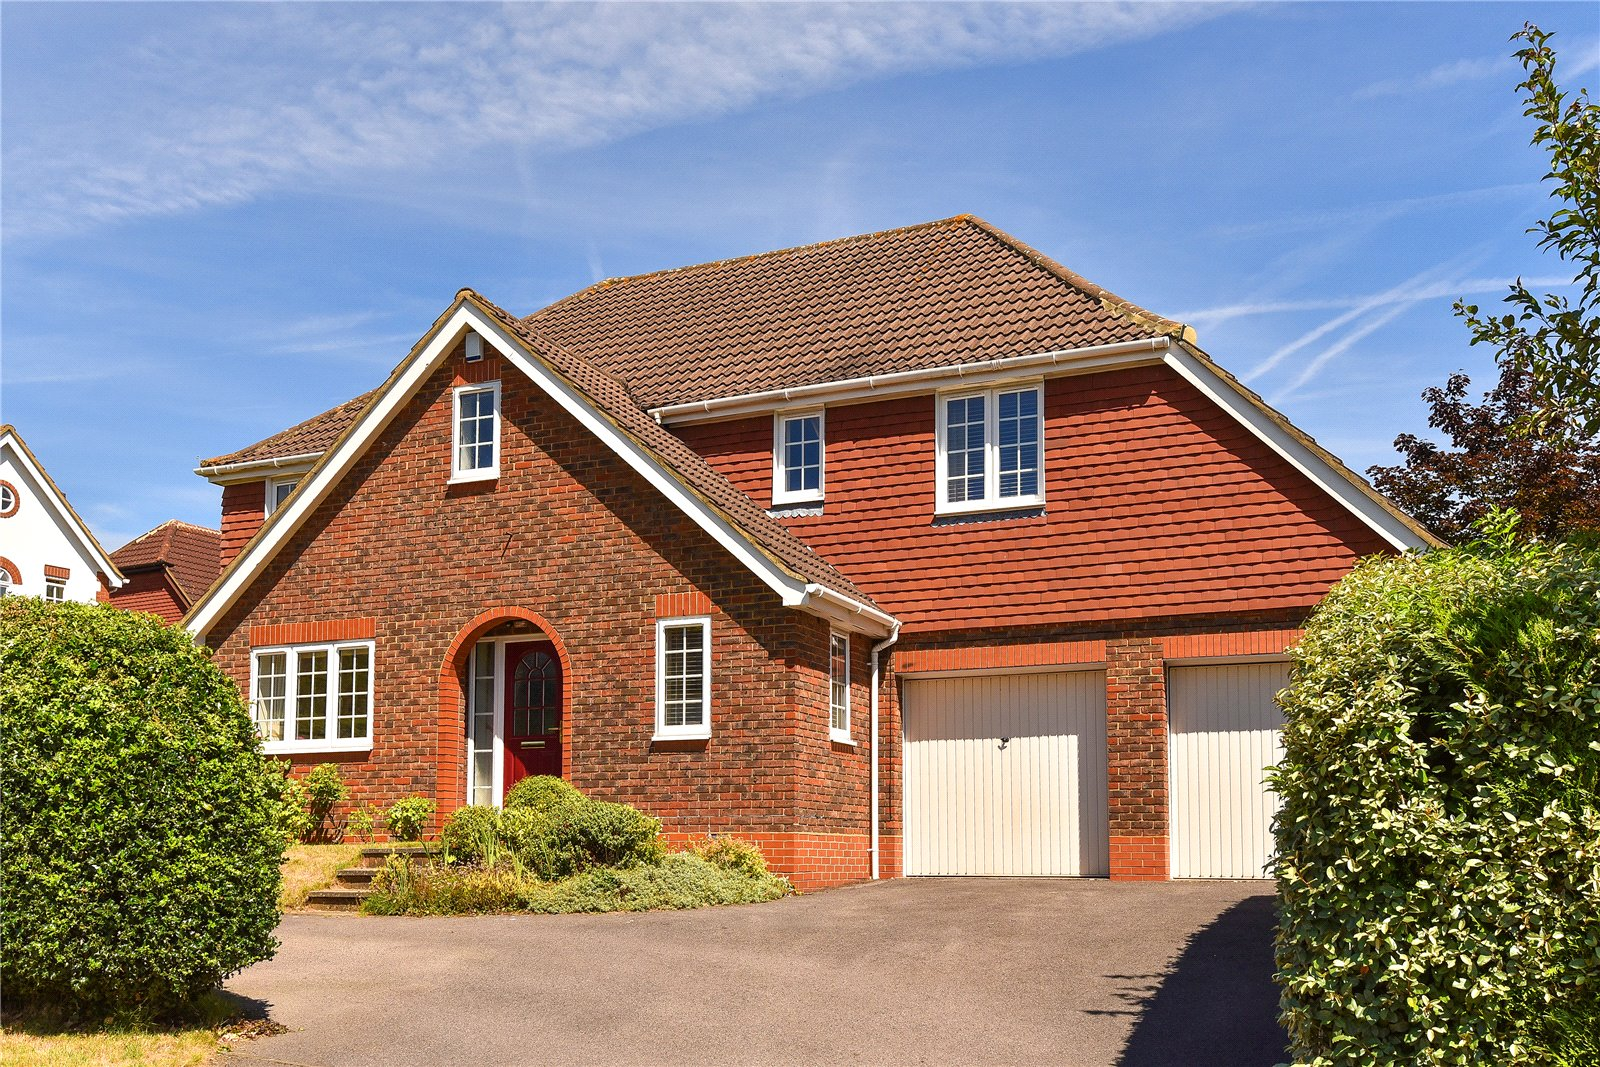 5 Bedrooms Detached House for sale in Holly Spring Lane, Bracknell, Berkshire, RG12